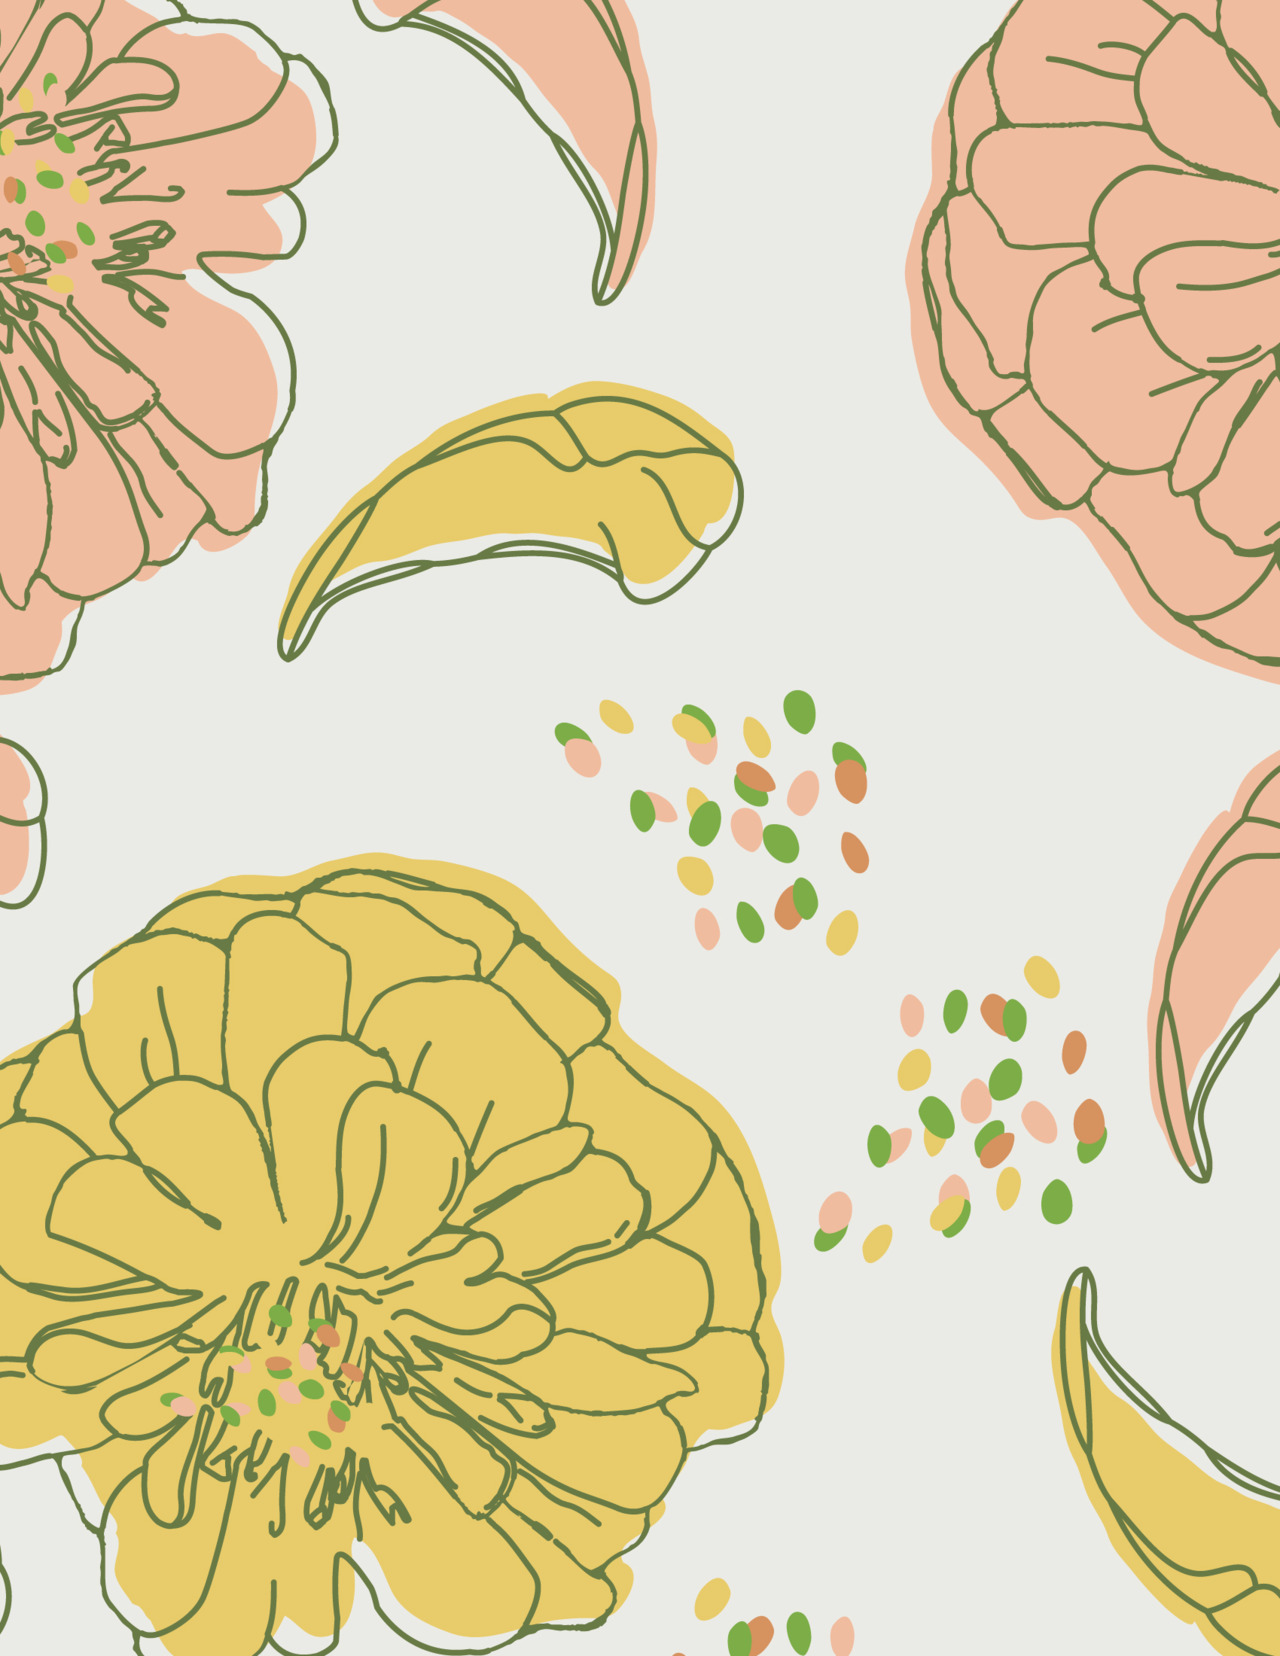 Hey guys! I'm teaching a Skillshare class on how to make patterns just like this! See more info here: http://skl.sh/HEez4V